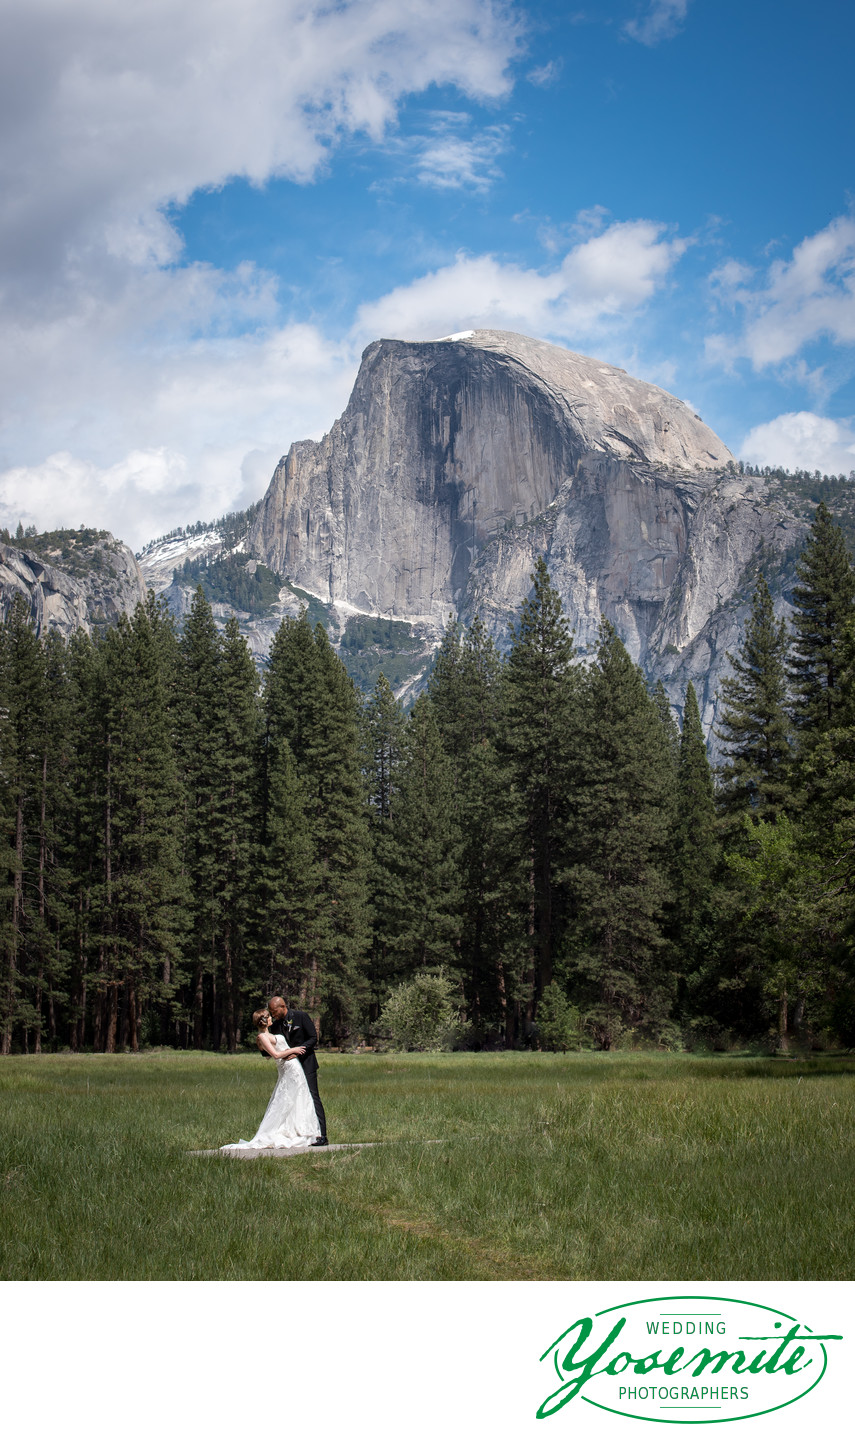 Bride And Groom On Wedding Day In Front of Half Dome